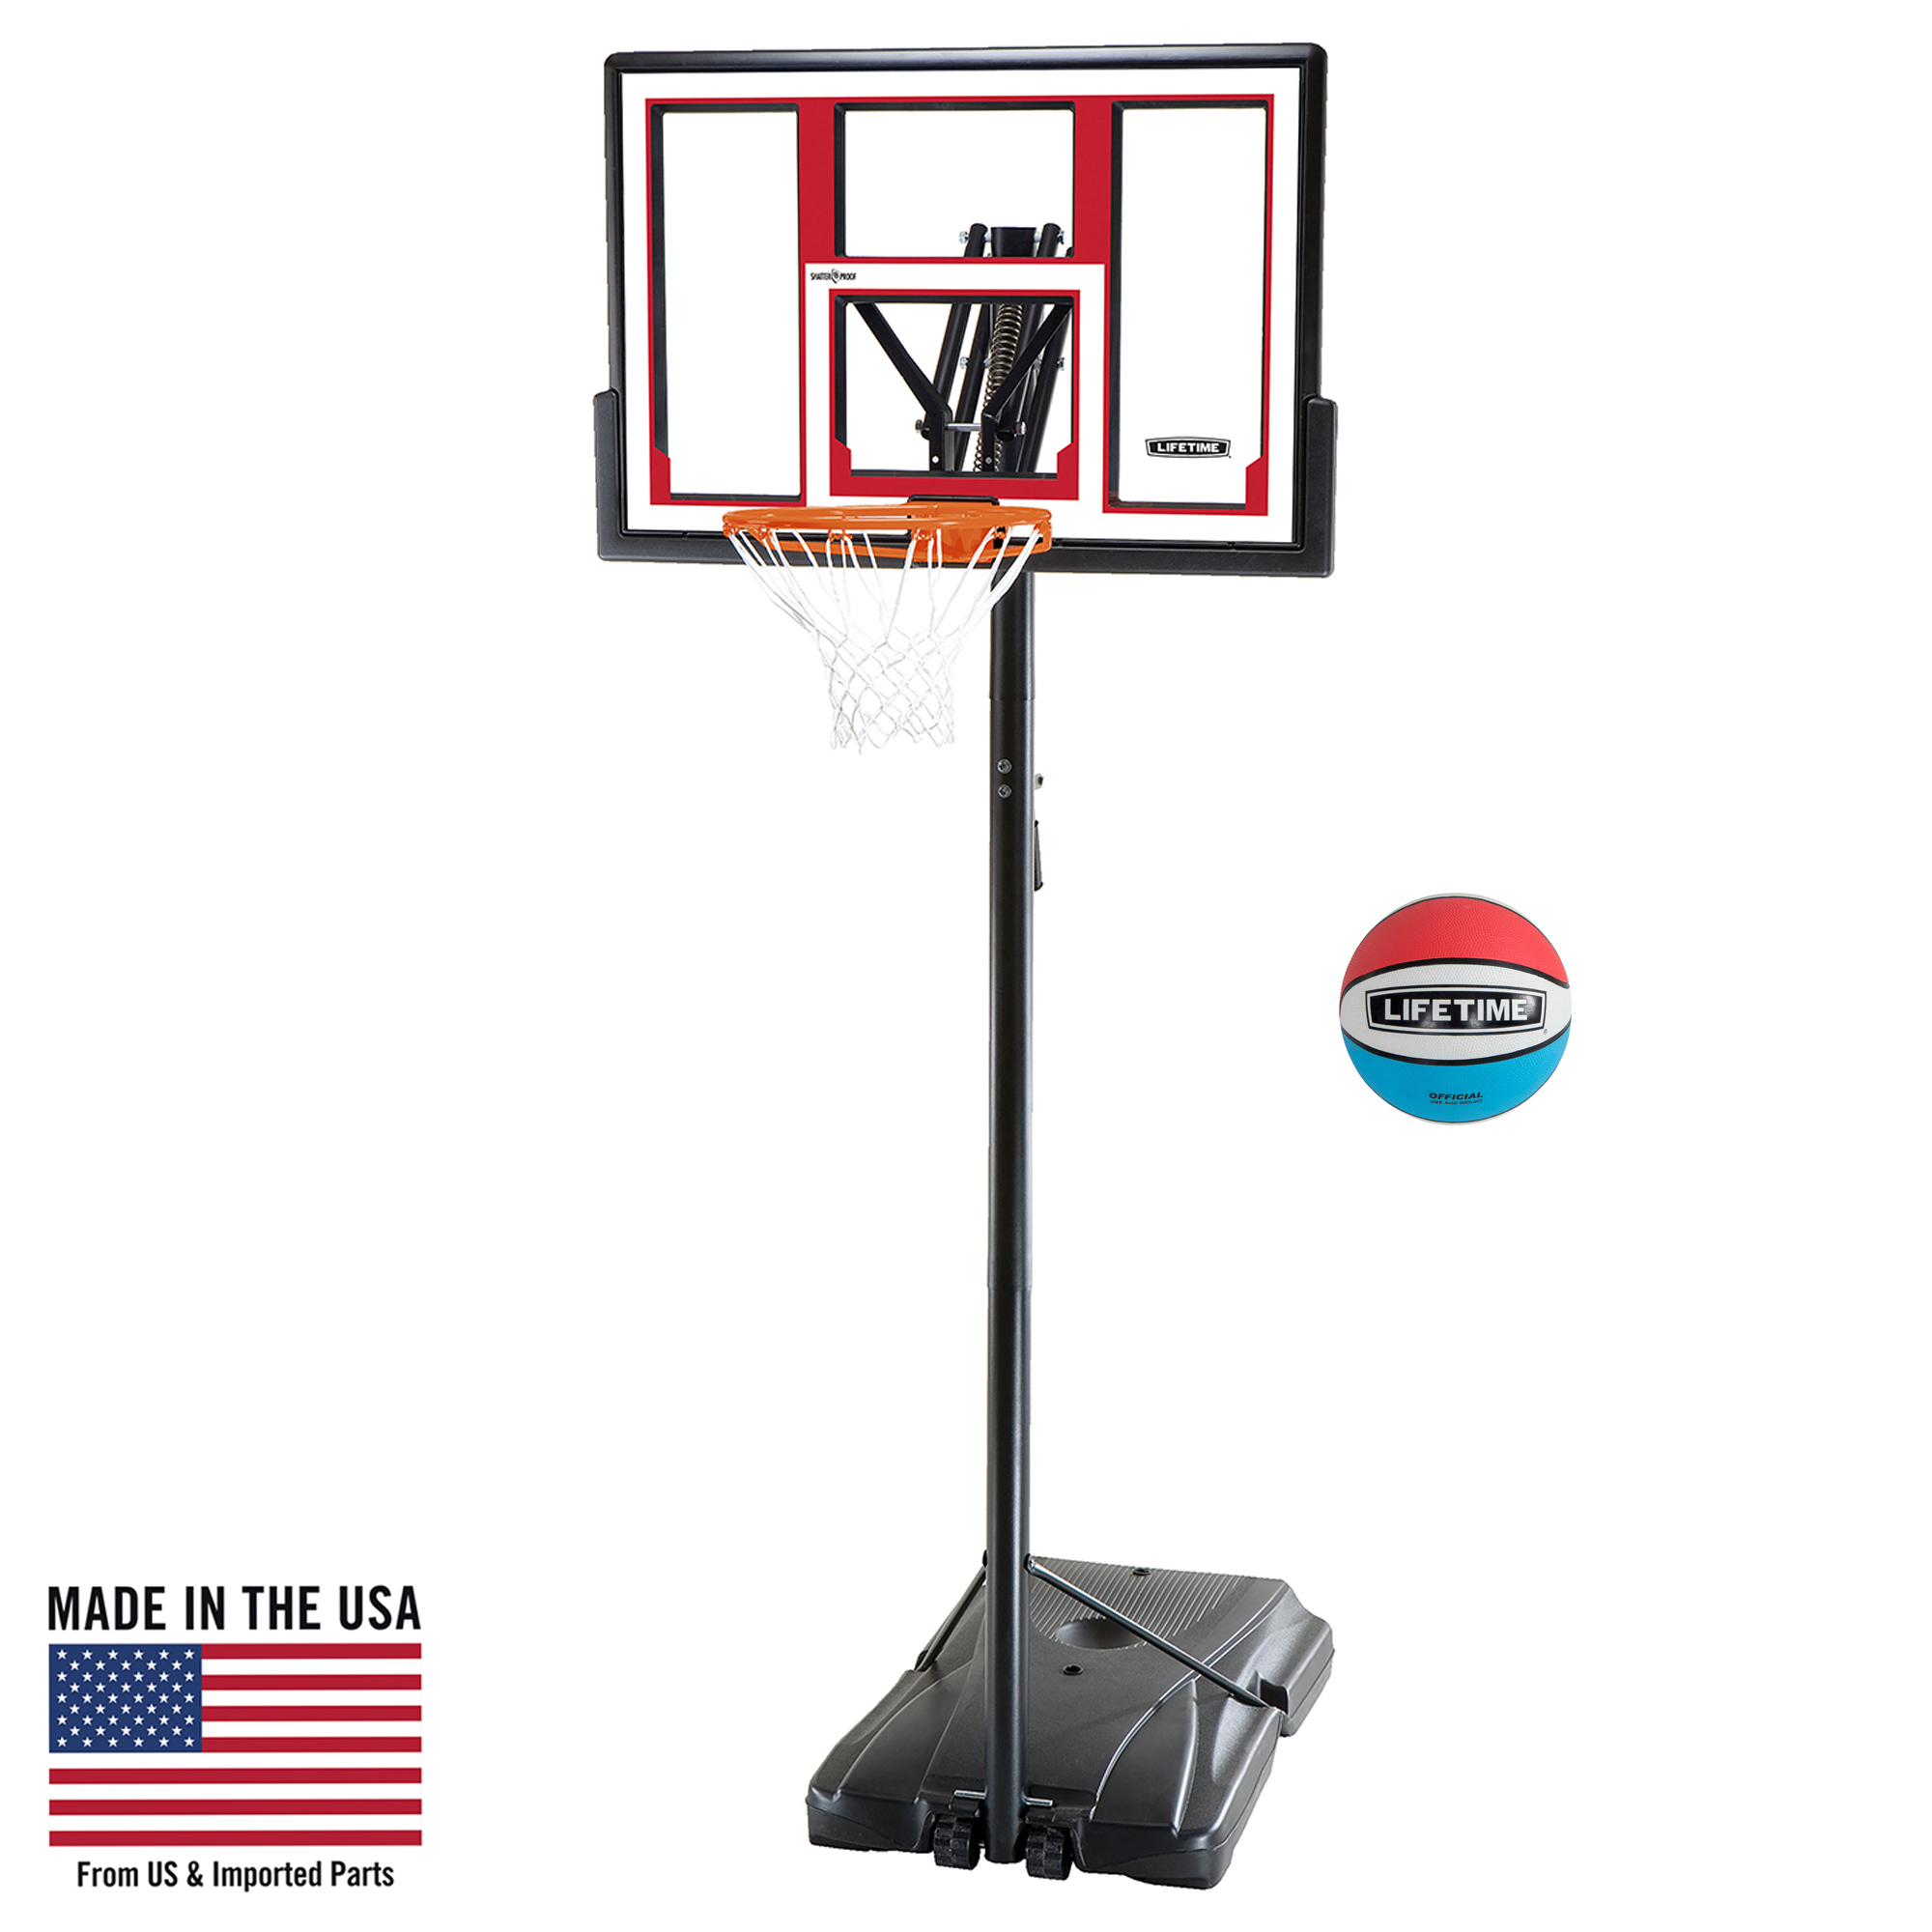 "Lifetime 48"" Shatterproof Portable One Hand Height Adjustable Basketball System with Basketball, 90491"